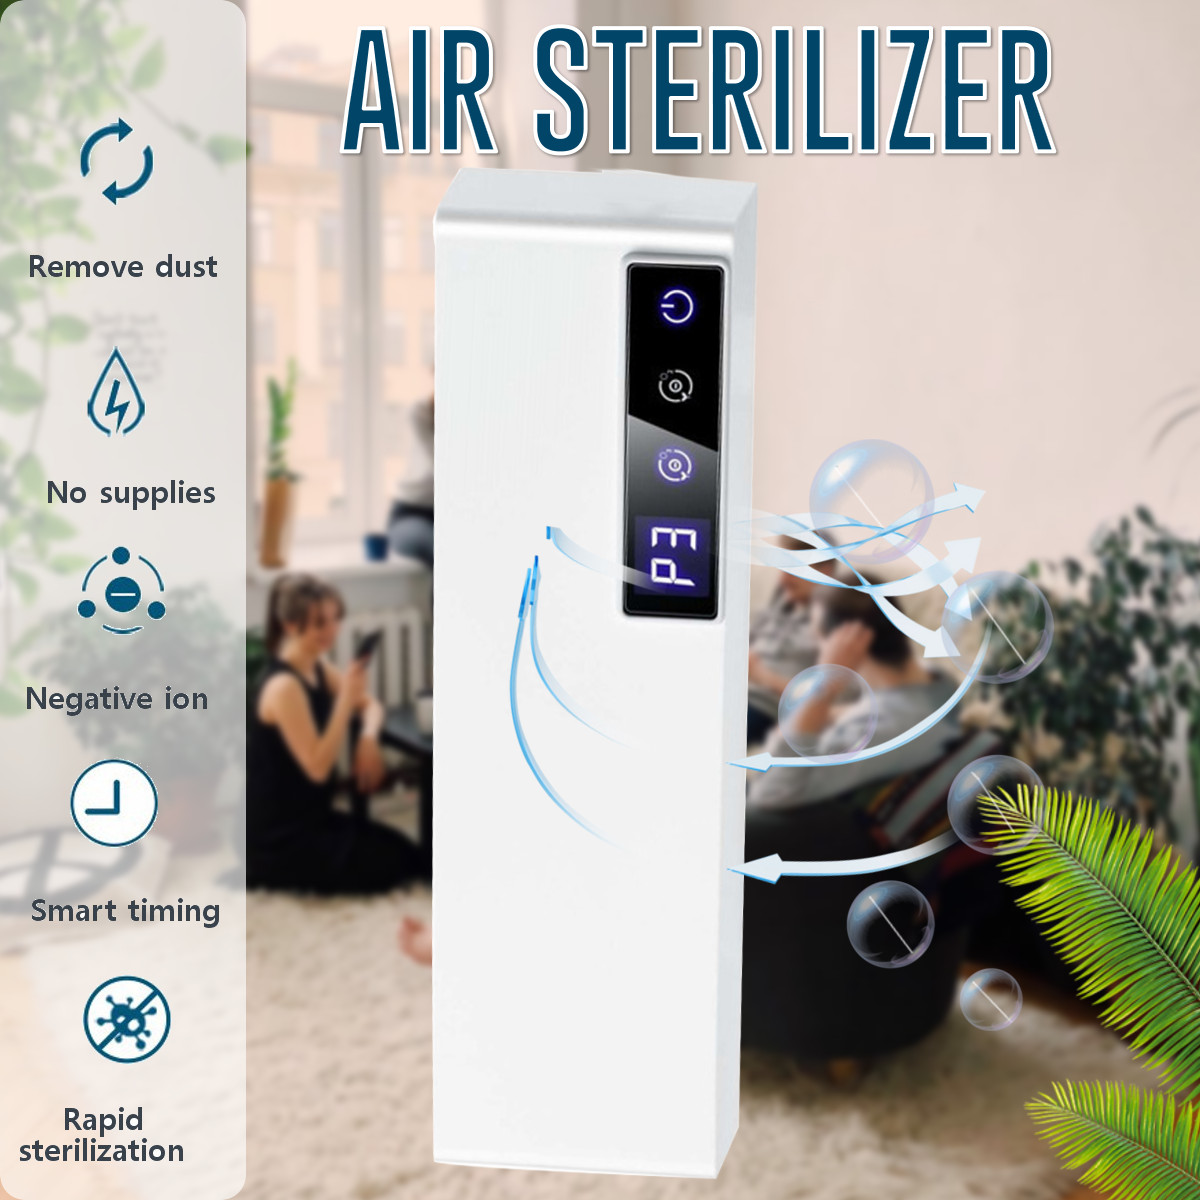 Ozone Disinfection Machine Air Purifier Household Terilization Odor-removal Formaldehyde-removal Negative Ions Air Sterilizer